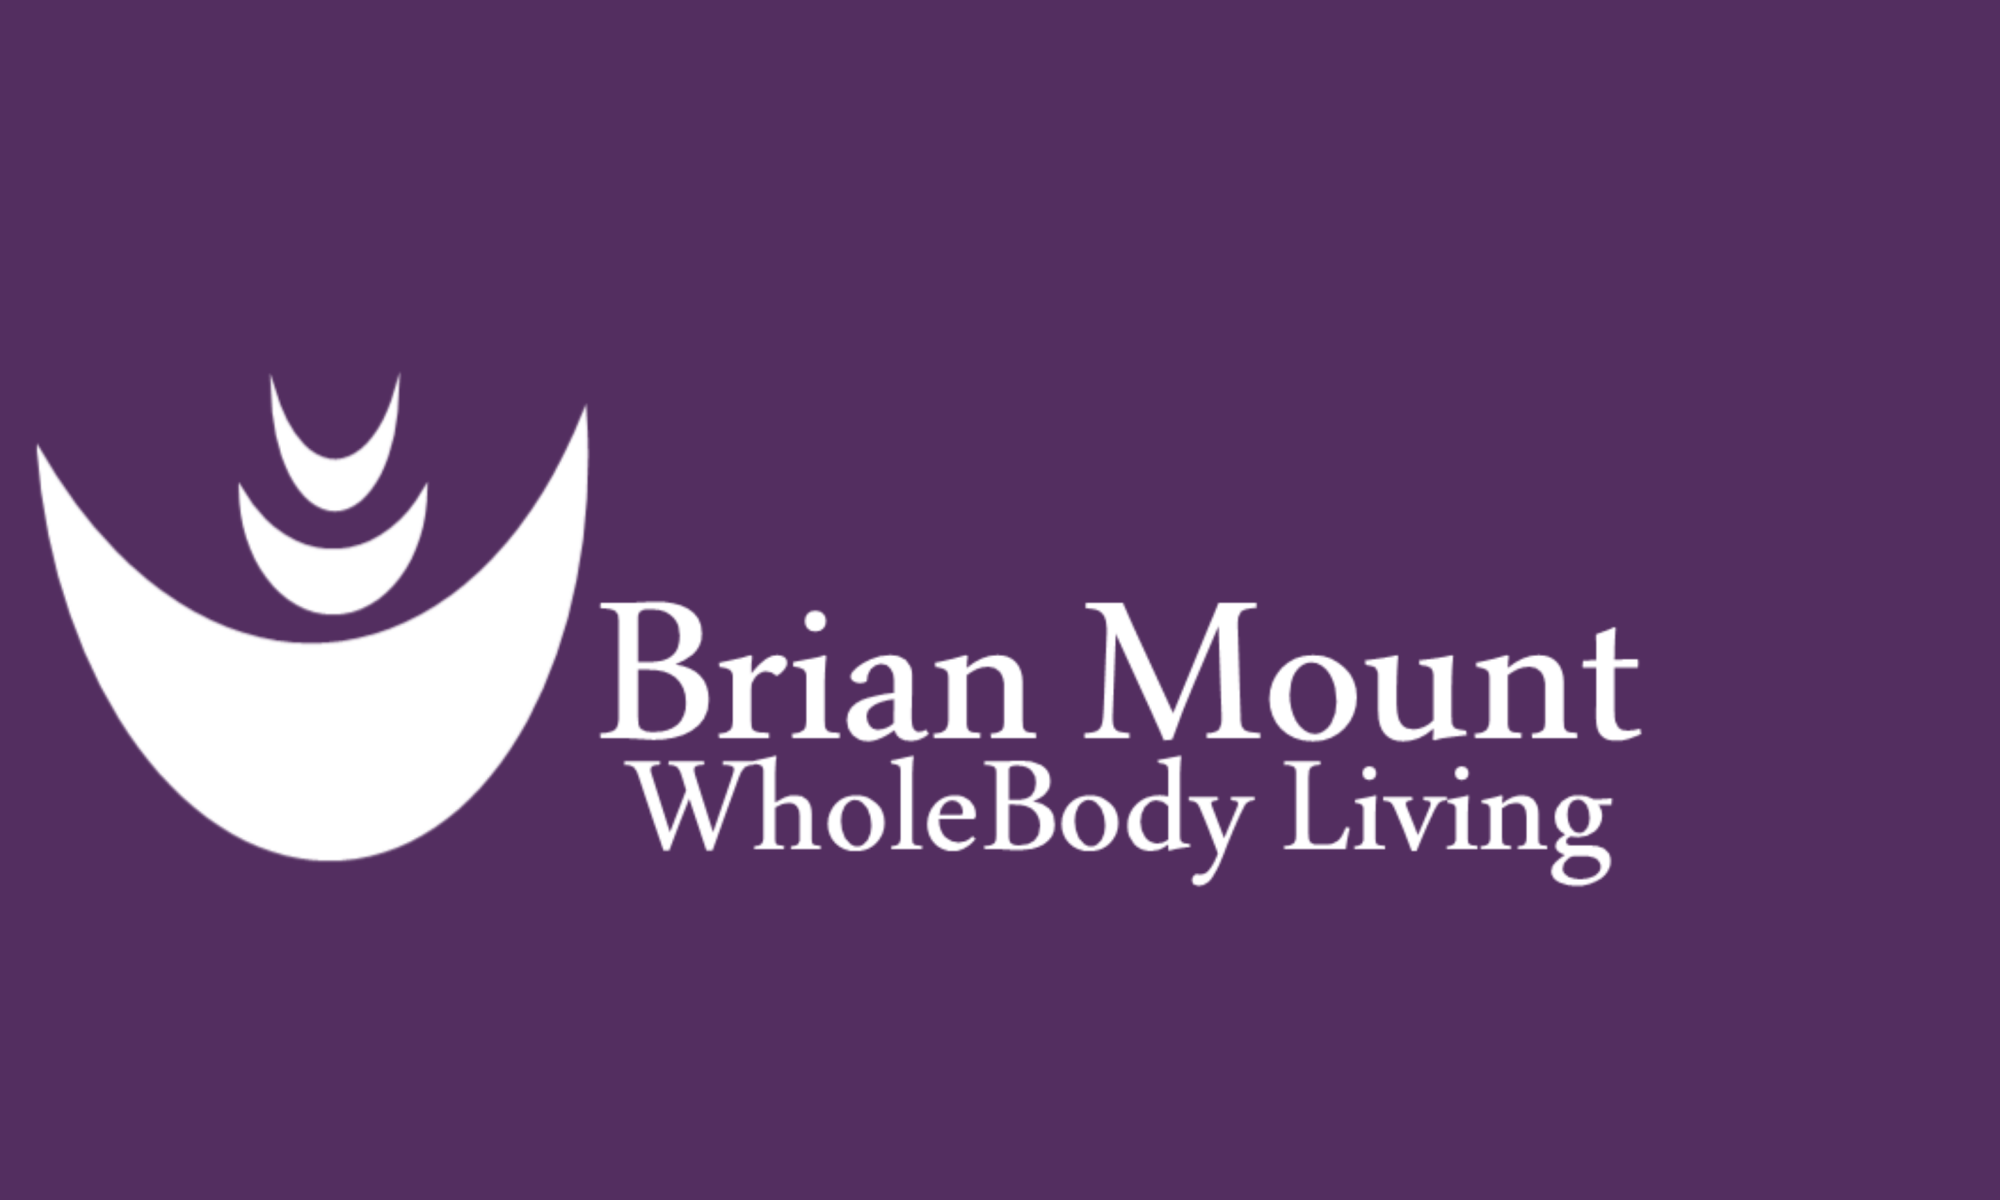 Brian Mount WholeBody Living